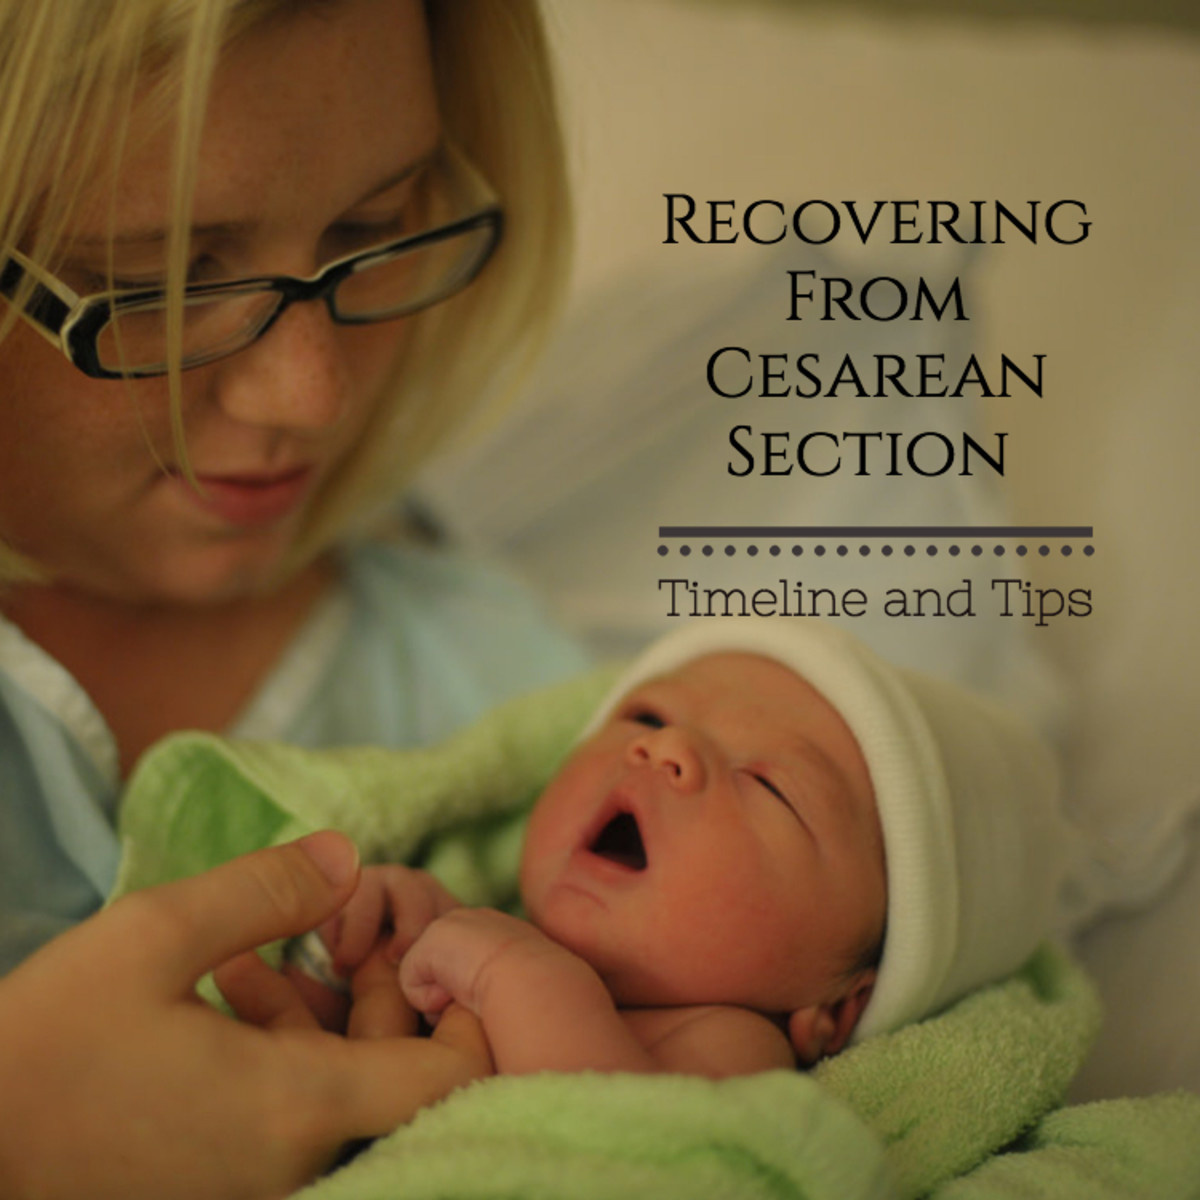 Recovering From a Cesarean Section: Timeline and Tips